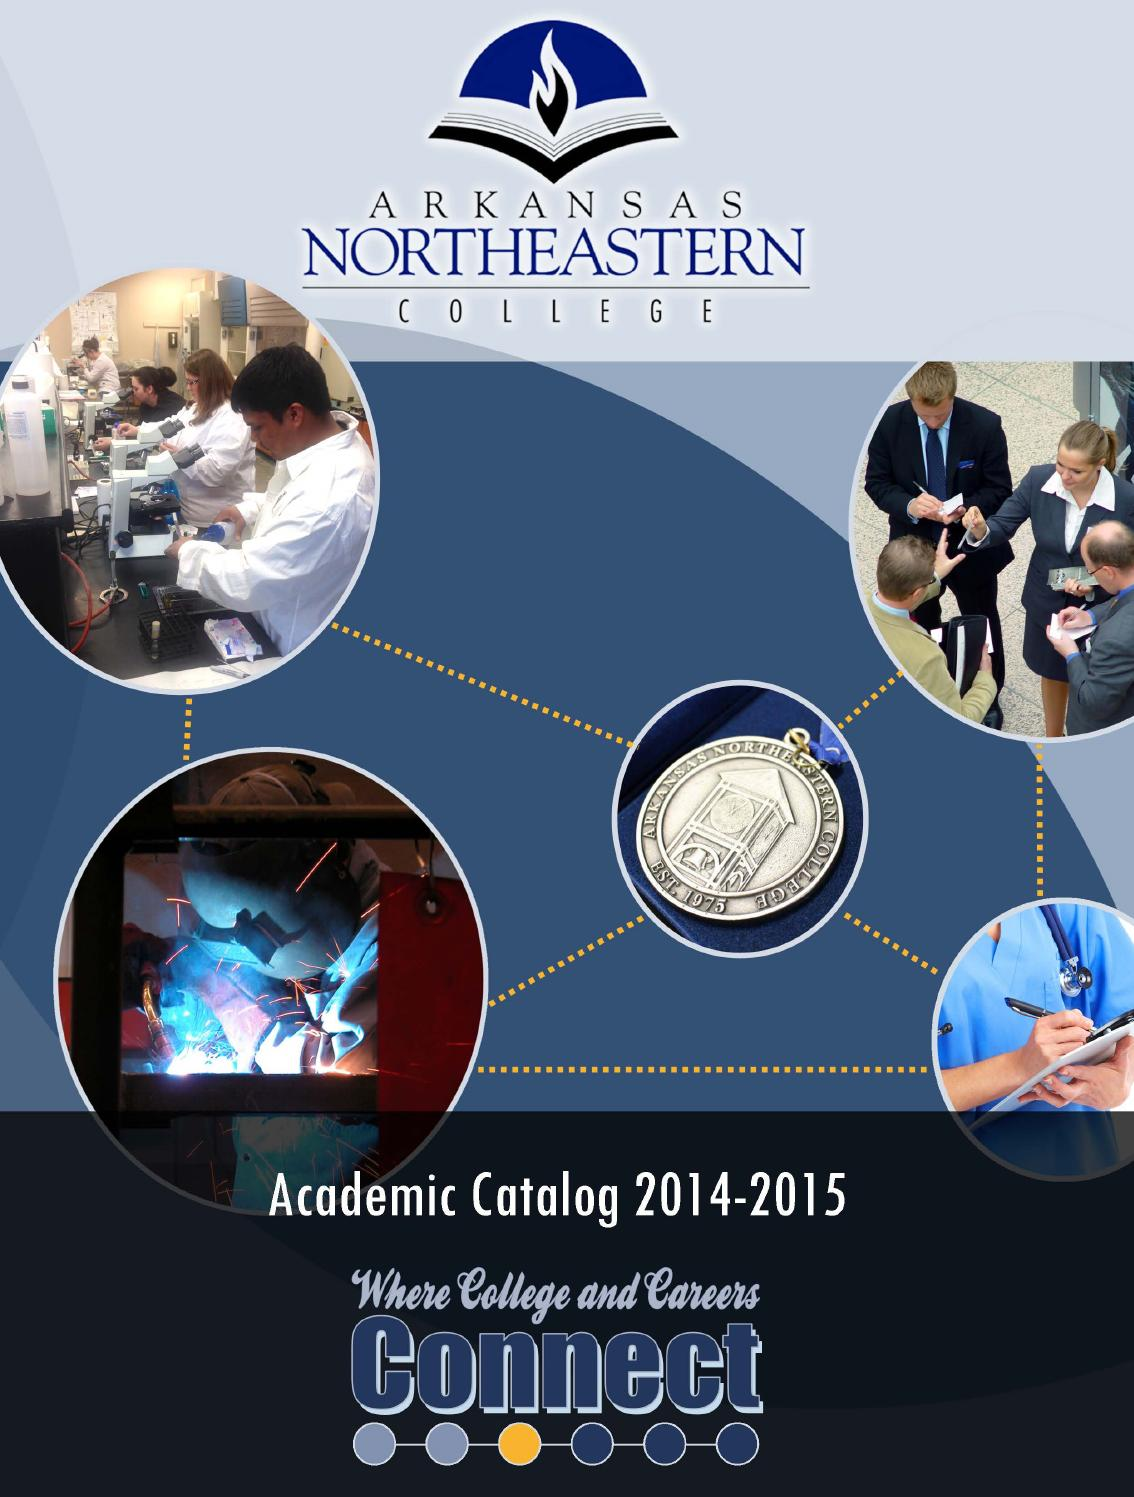 Arkansas Northeastern College Course Catalog 2014-2015 by ...